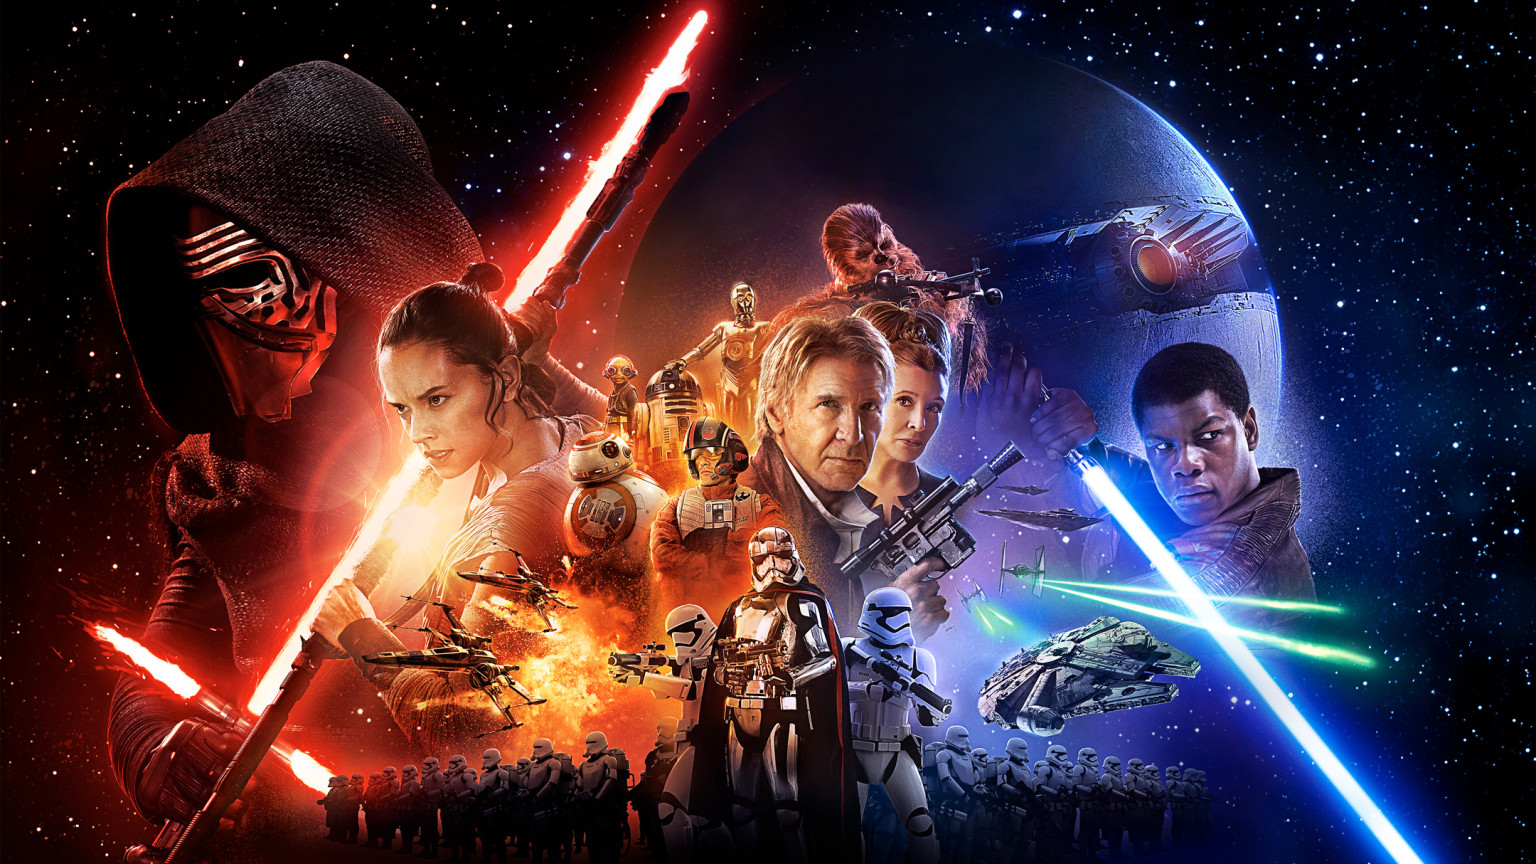 Pourquoi Star Wars fantasy et non la science-fiction ?